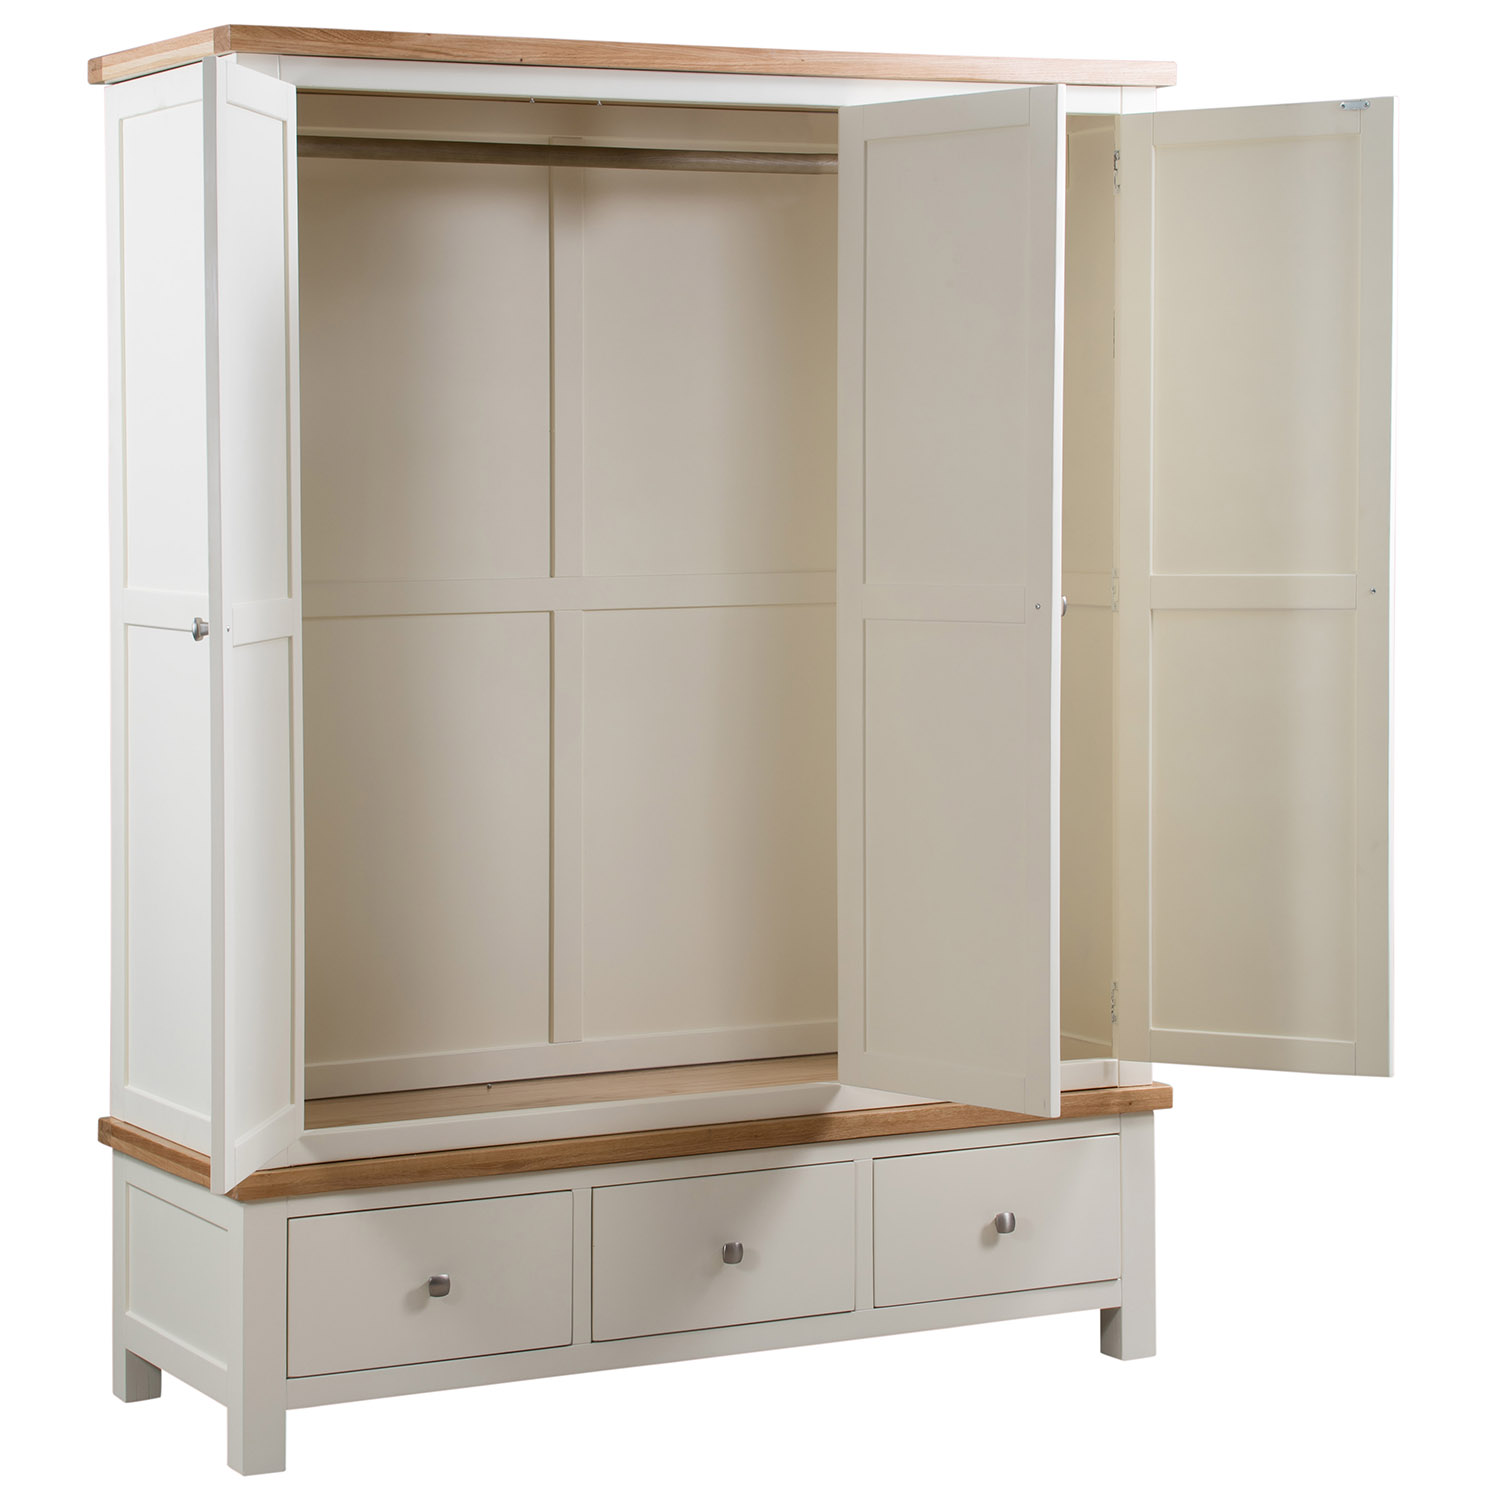 Maiden Oak Painted Triple Wardrobe with 3 Drawers